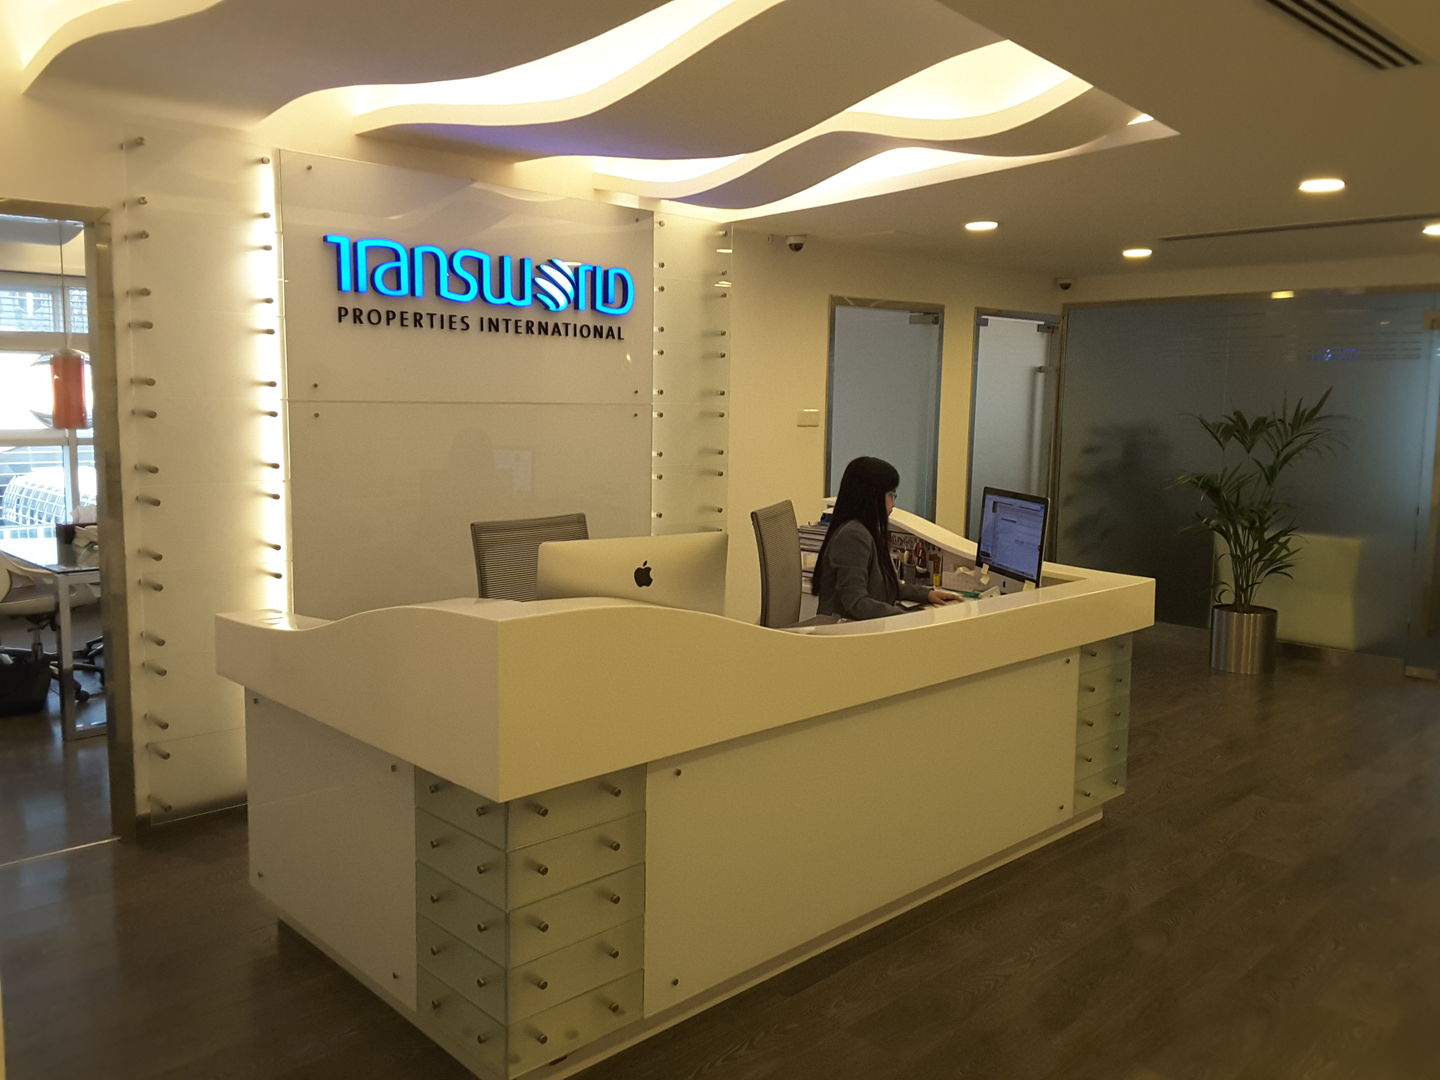 HiDubai-business-transworld-properties-international-housing-real-estate-real-estate-agencies-trade-centre-1-dubai-2